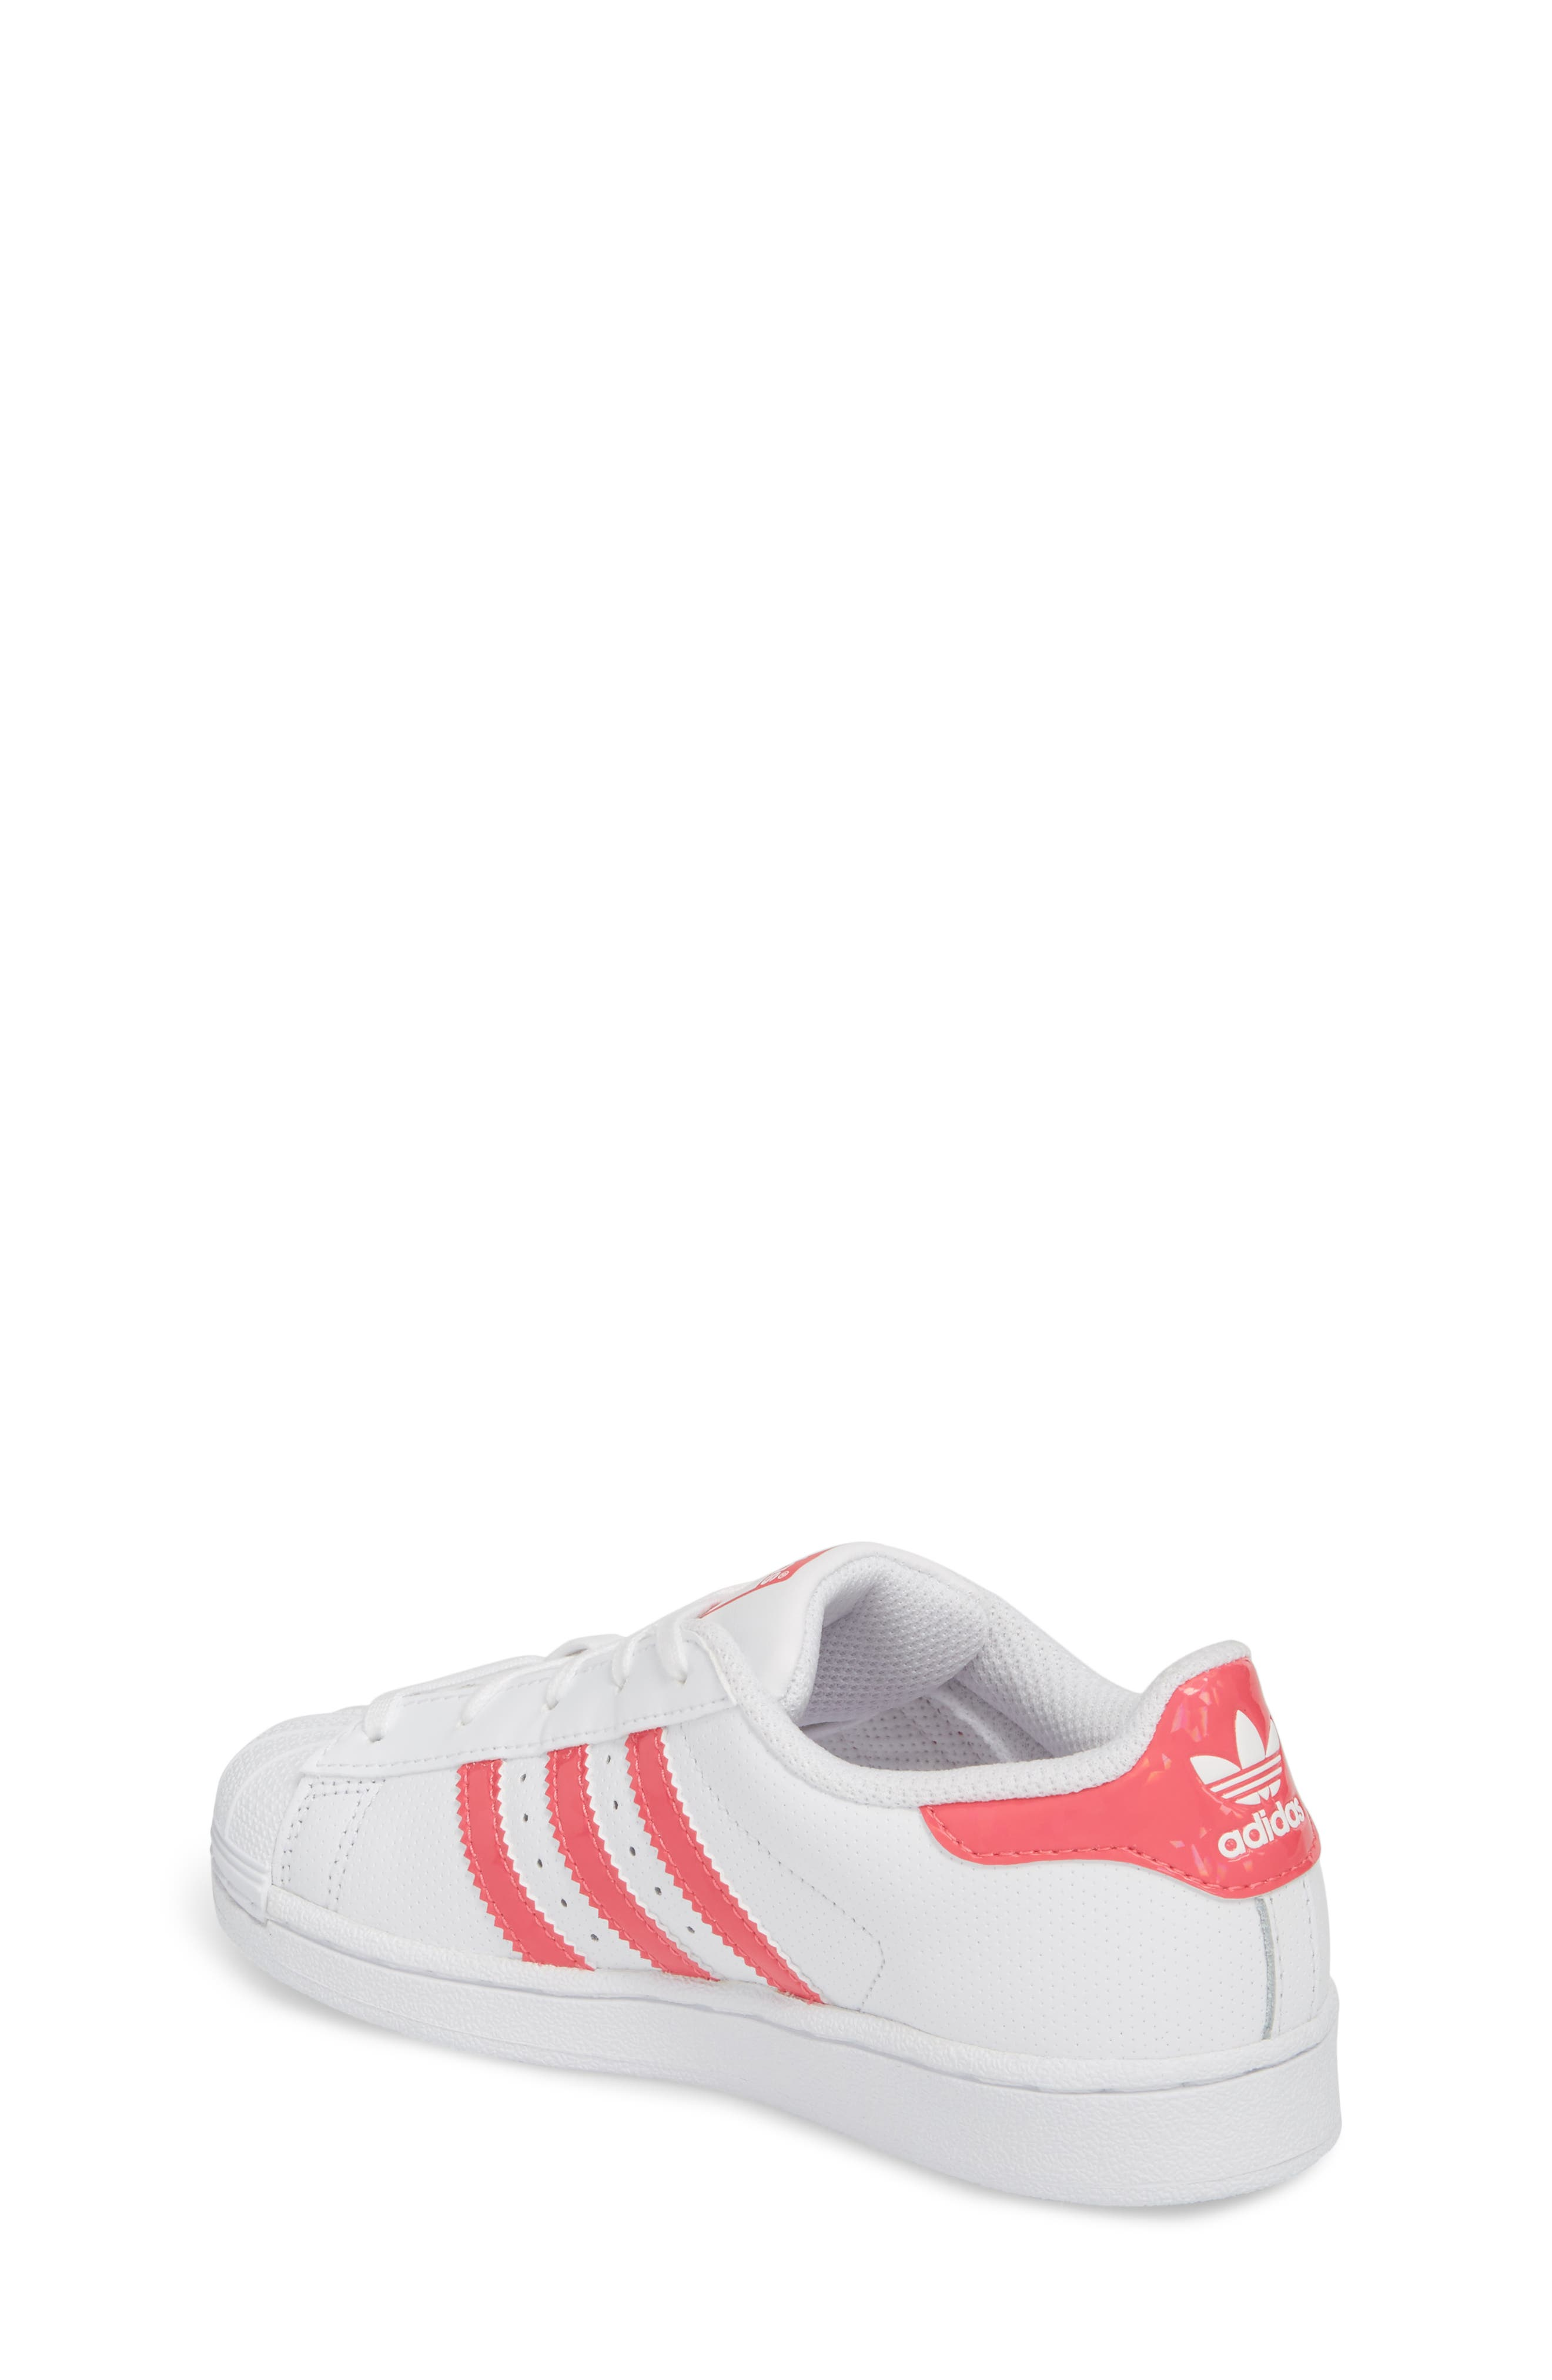 Superstar Perforated Low Top Sneaker,                             Alternate thumbnail 2, color,                             White / Real Pink / White